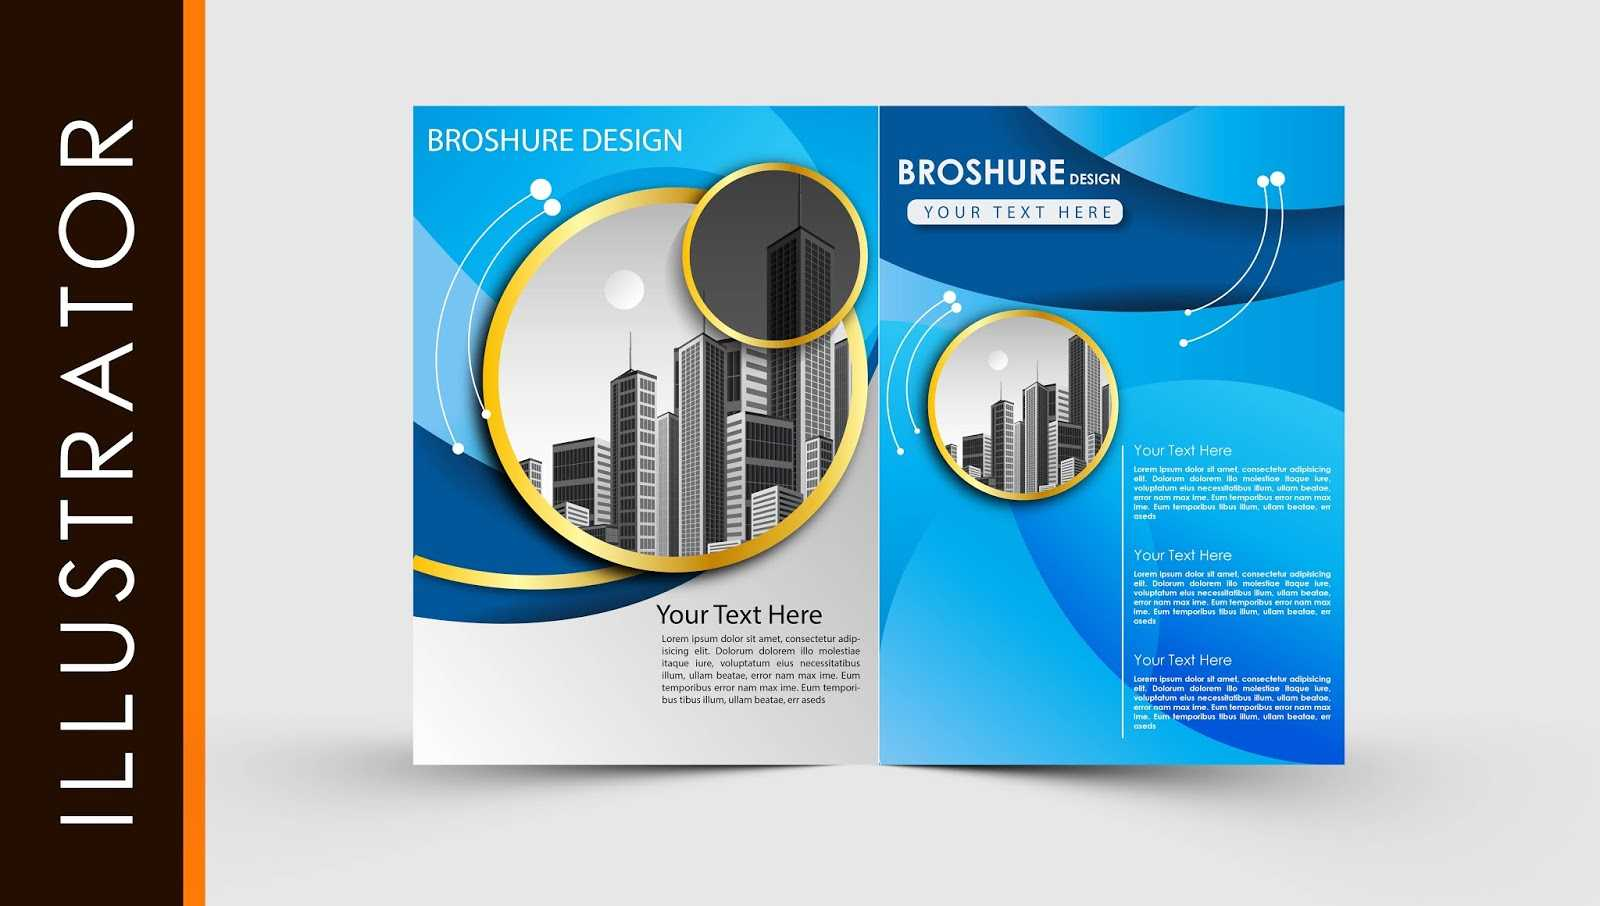 Free Download Adobe Illustrator Template Brochure Two Fold Pertaining To Brochure Template Illustrator Free Download